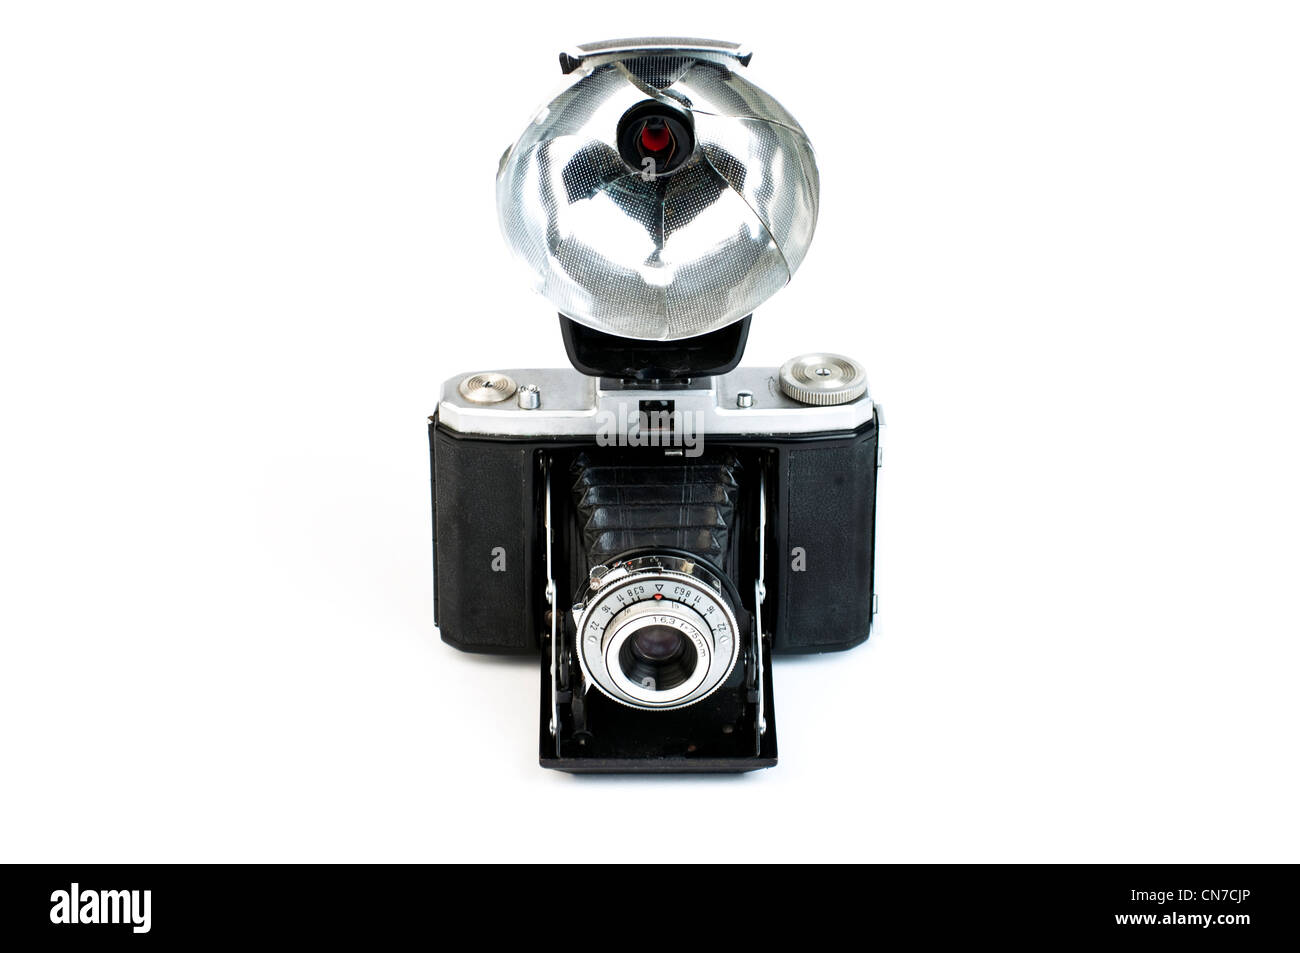 Vintage camera with a flash gun - Stock Image